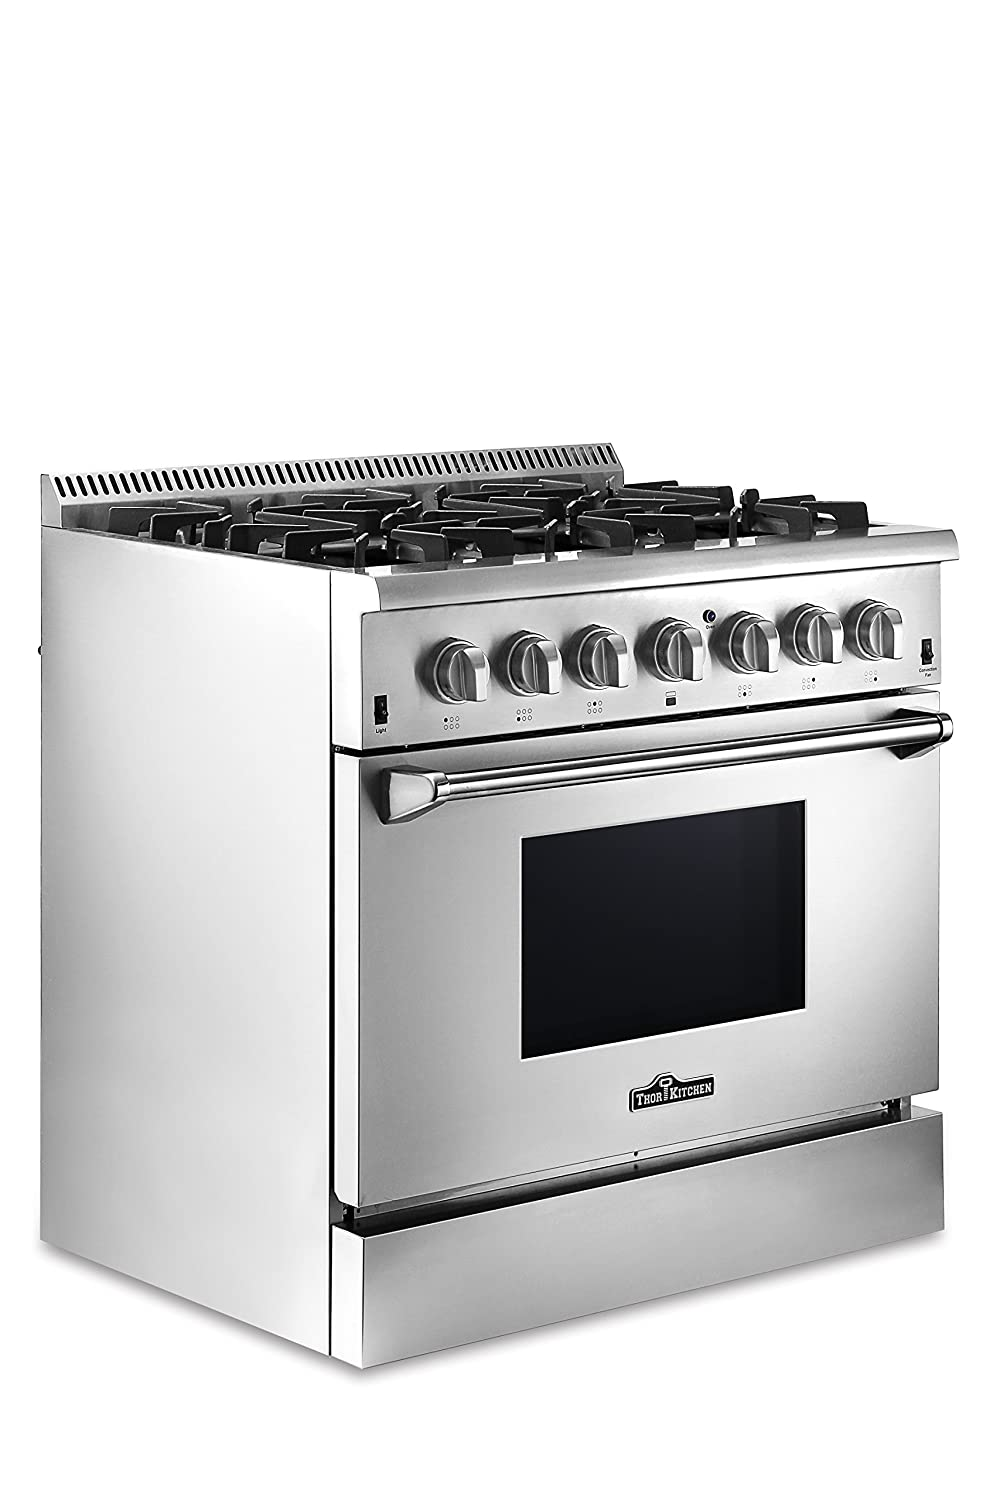 ft Dual Fuel Range Stainless Steel Thor Kitchen 36-5.2 cu Freestanding Electric Oven with 6 Burners Gas Range and Convection Blower Fan HRD3606U-1 Without LP Conversion Kit